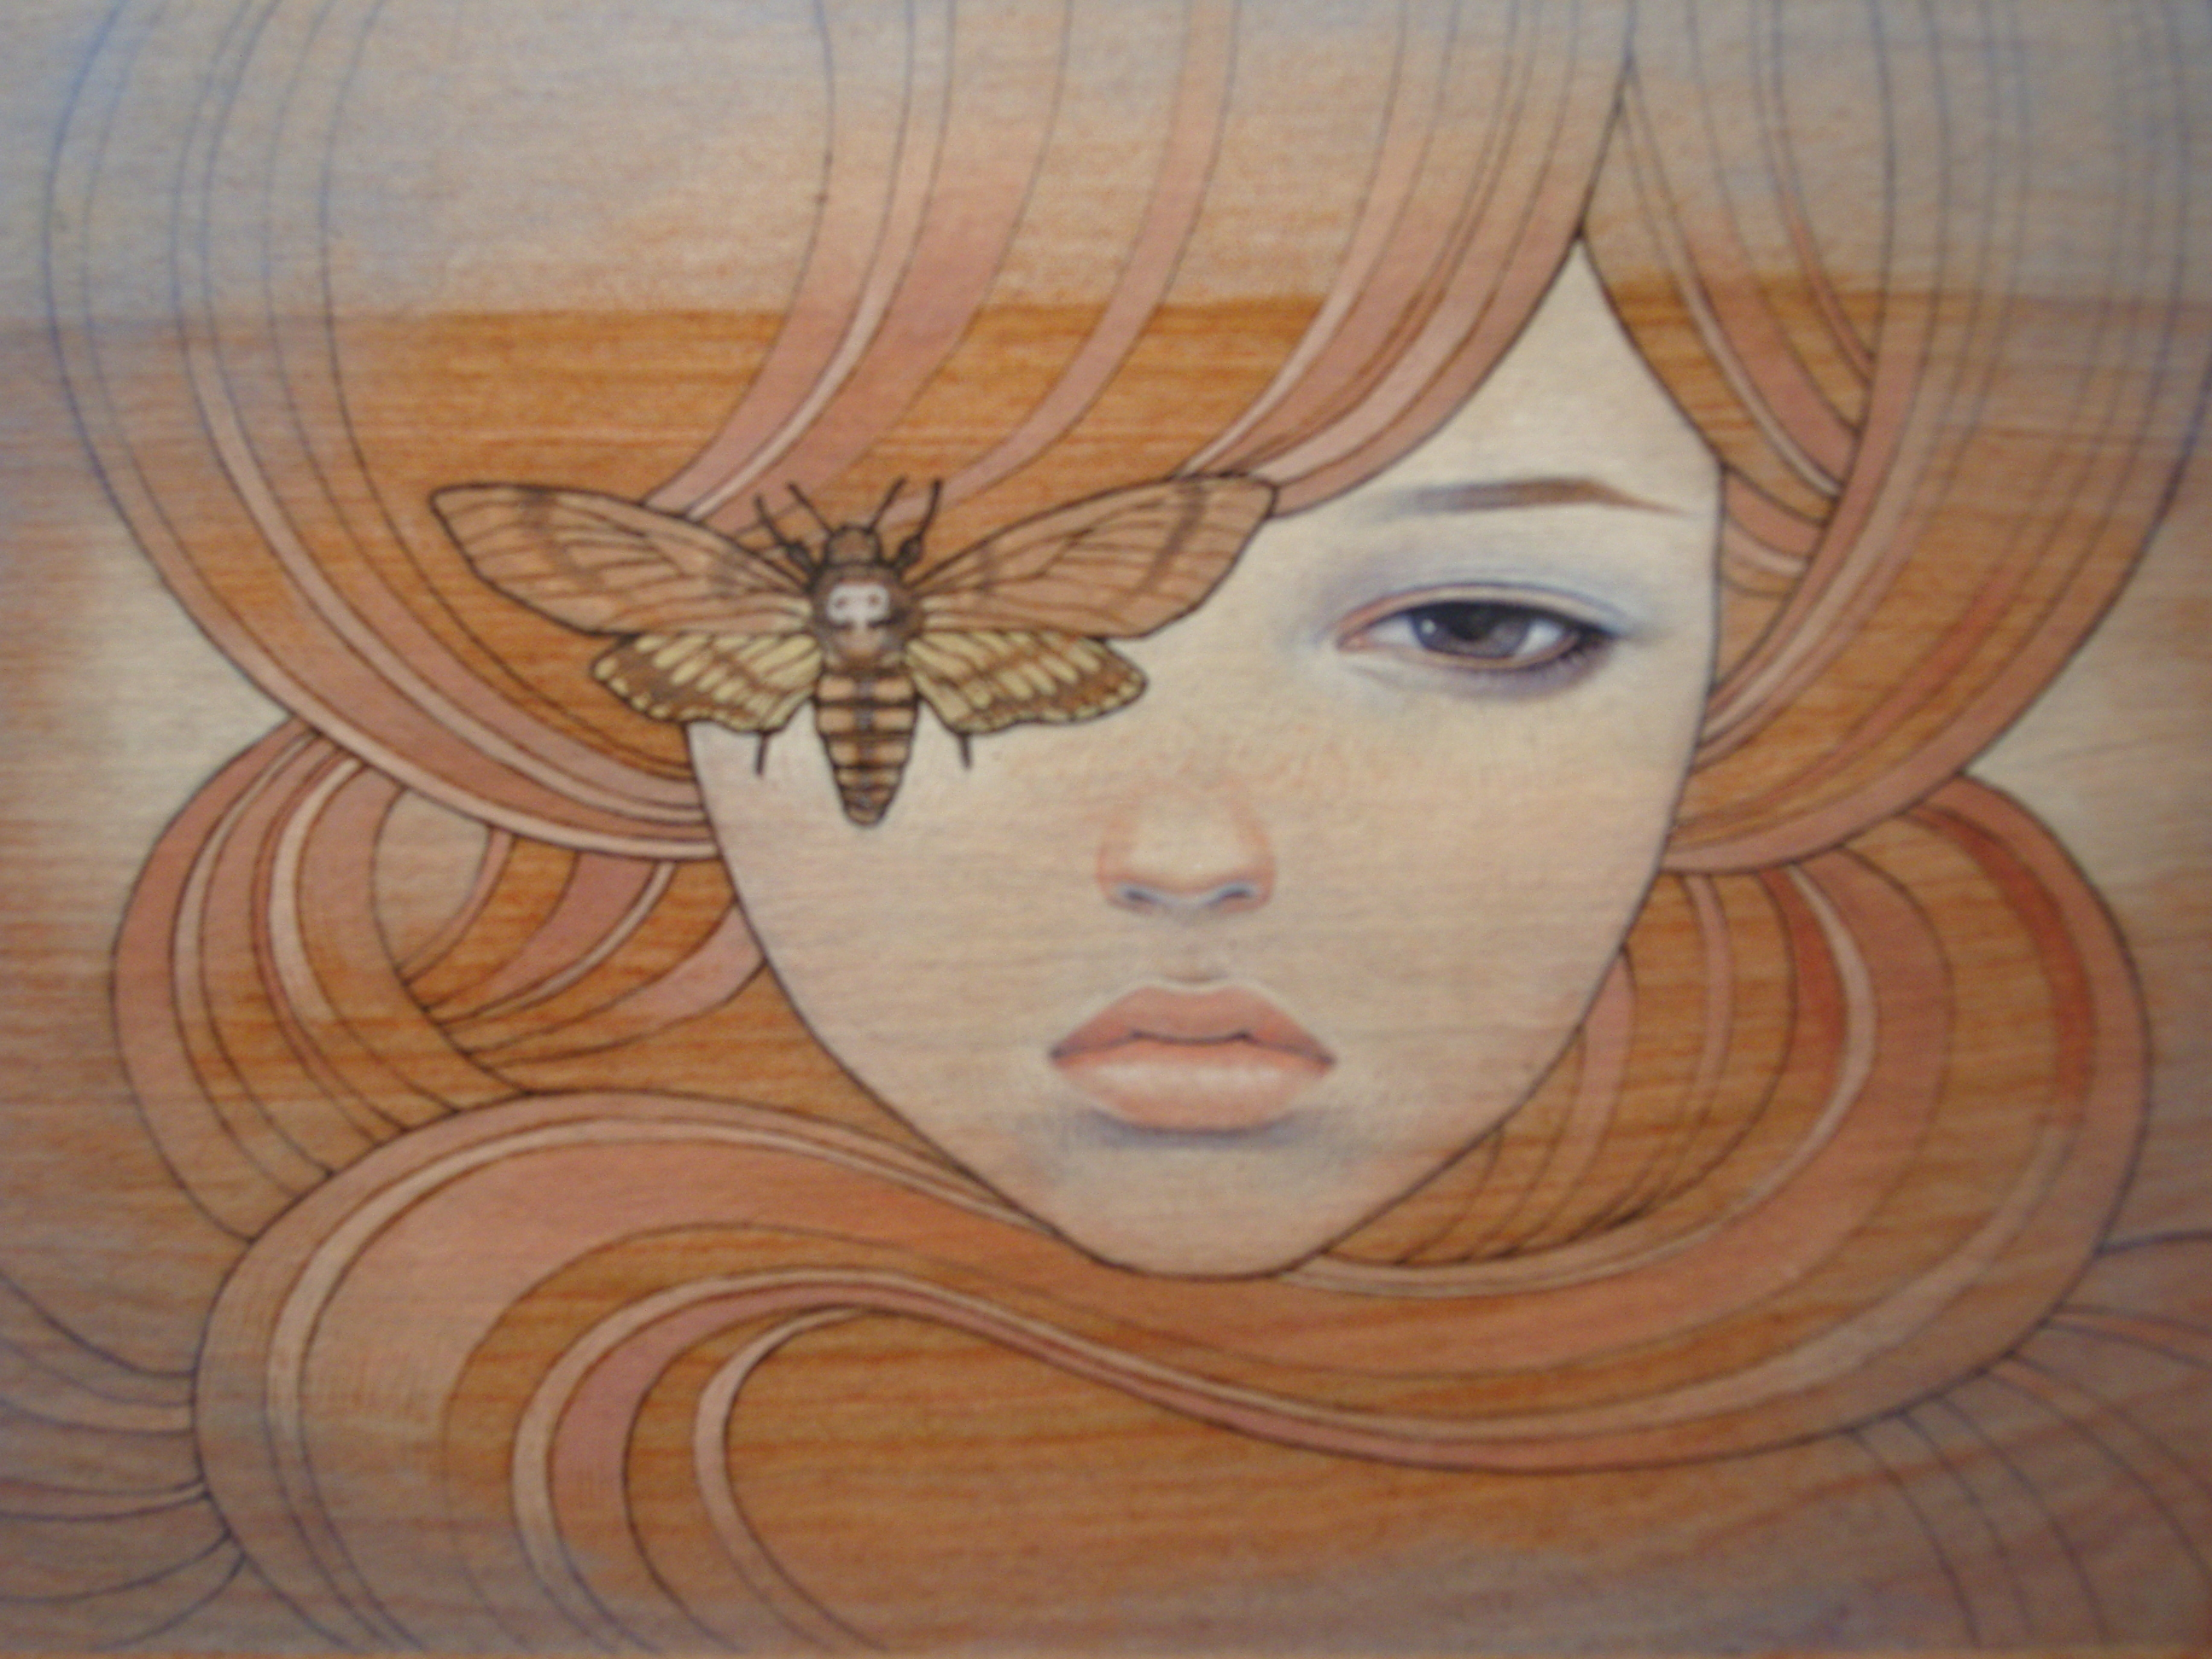 paintings Audrey Kawasaki HD Wallpaper